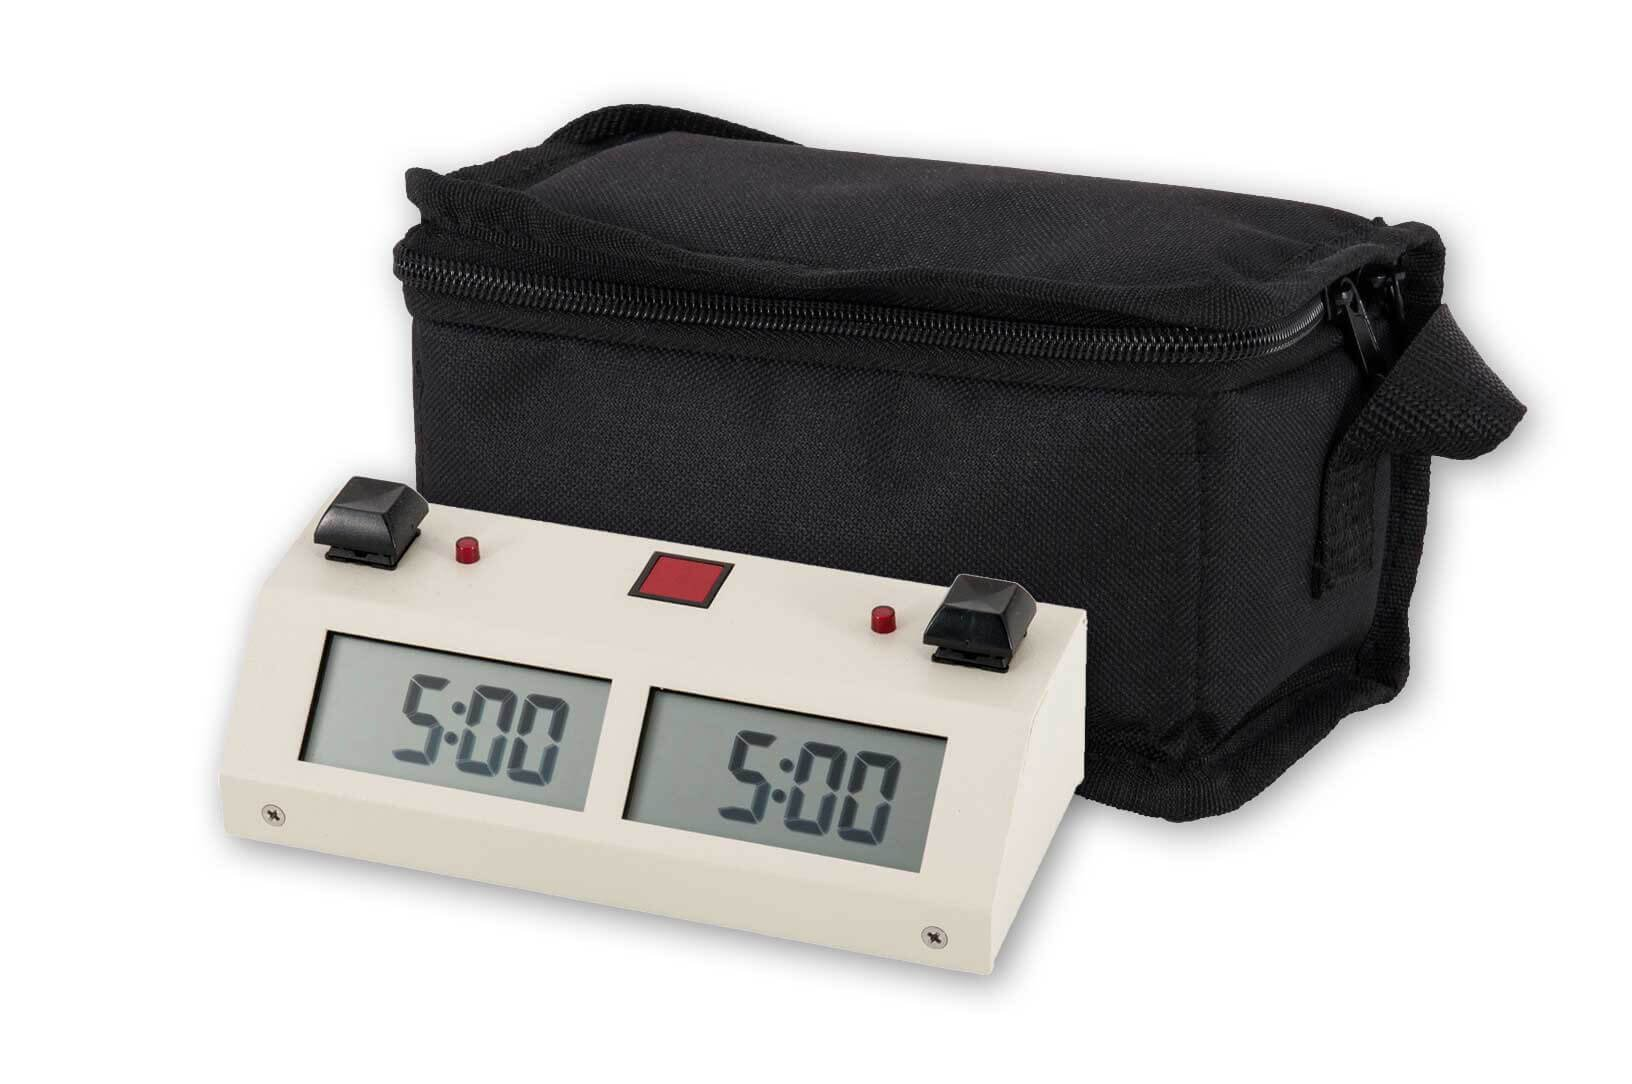 Chronos GX Digital Game Chess Clock - BUTTON - White with Carrying Bag - by US Chess Federation